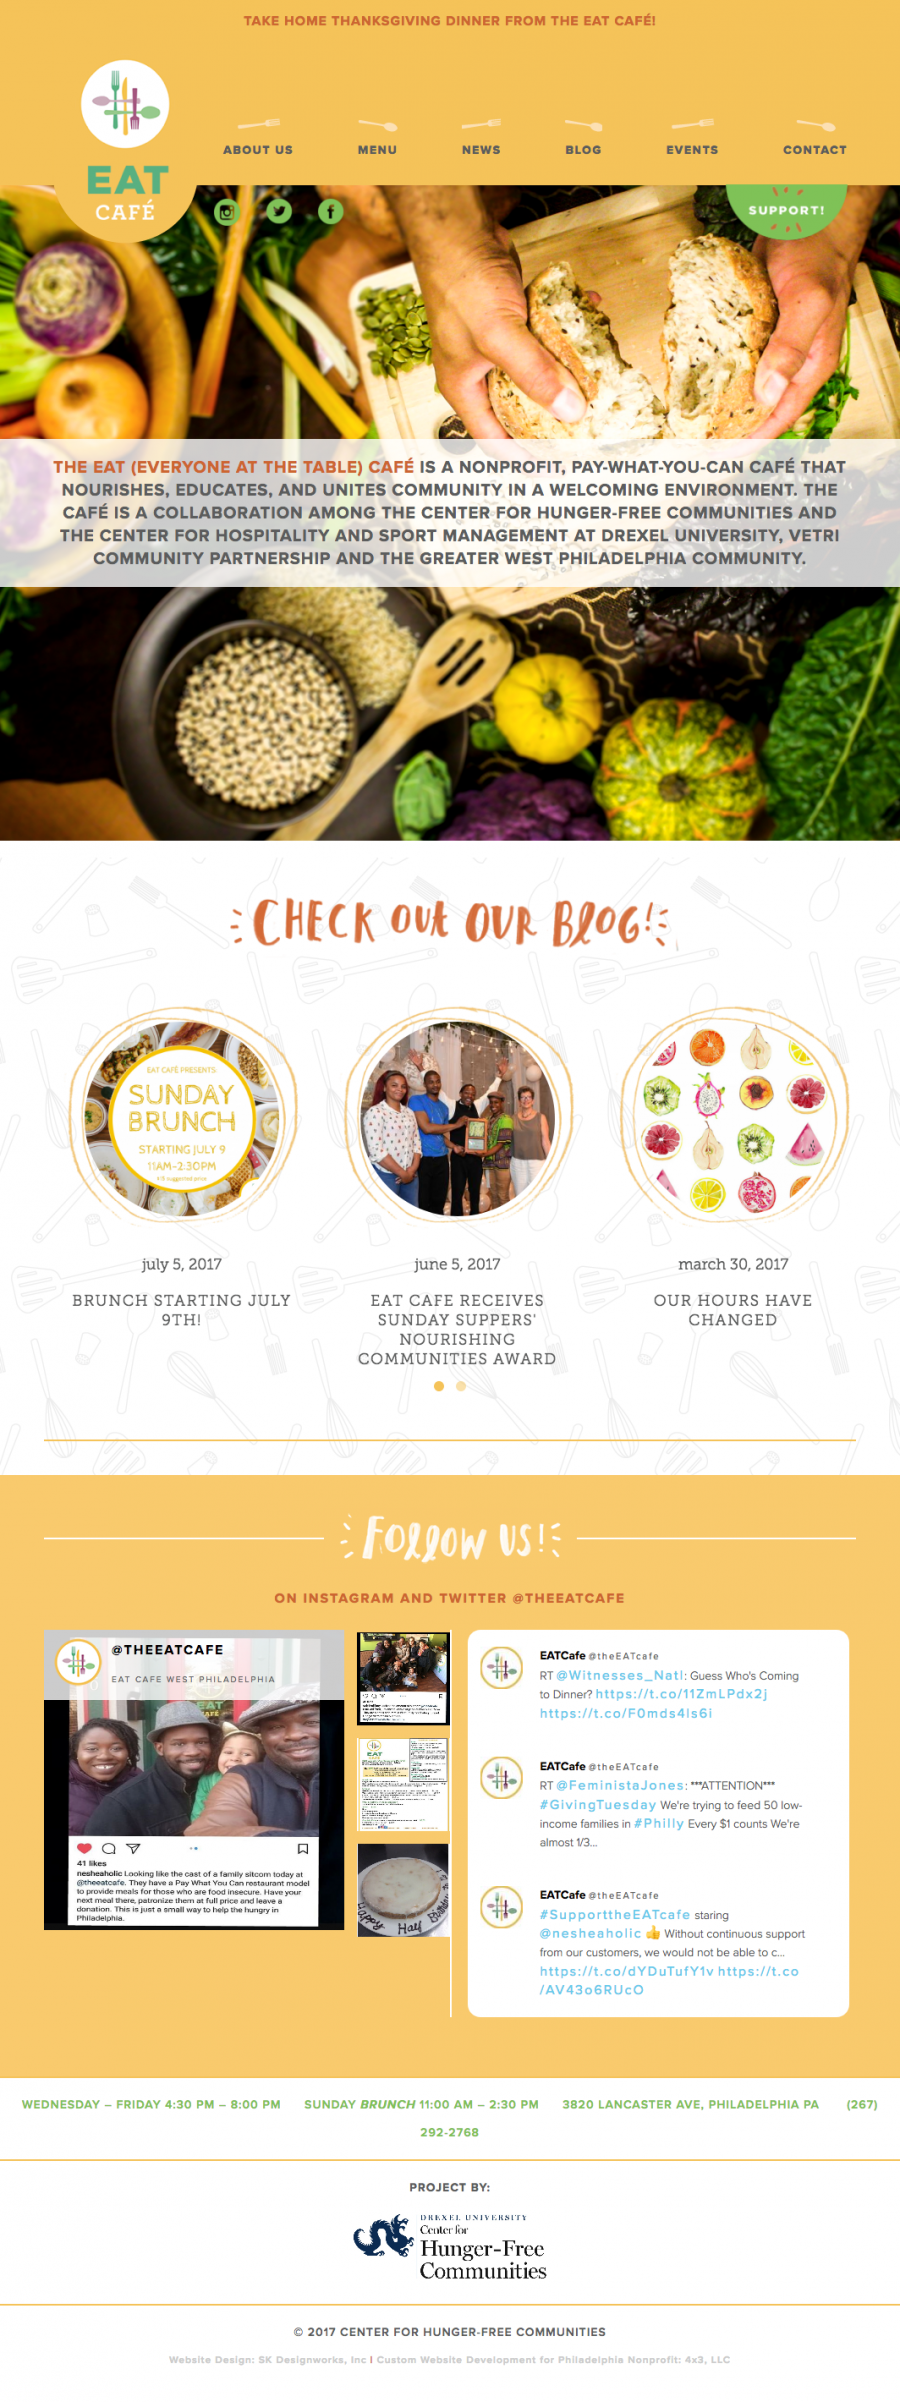 Homepage featuring news, menu items, upcoming events and live social media feeds